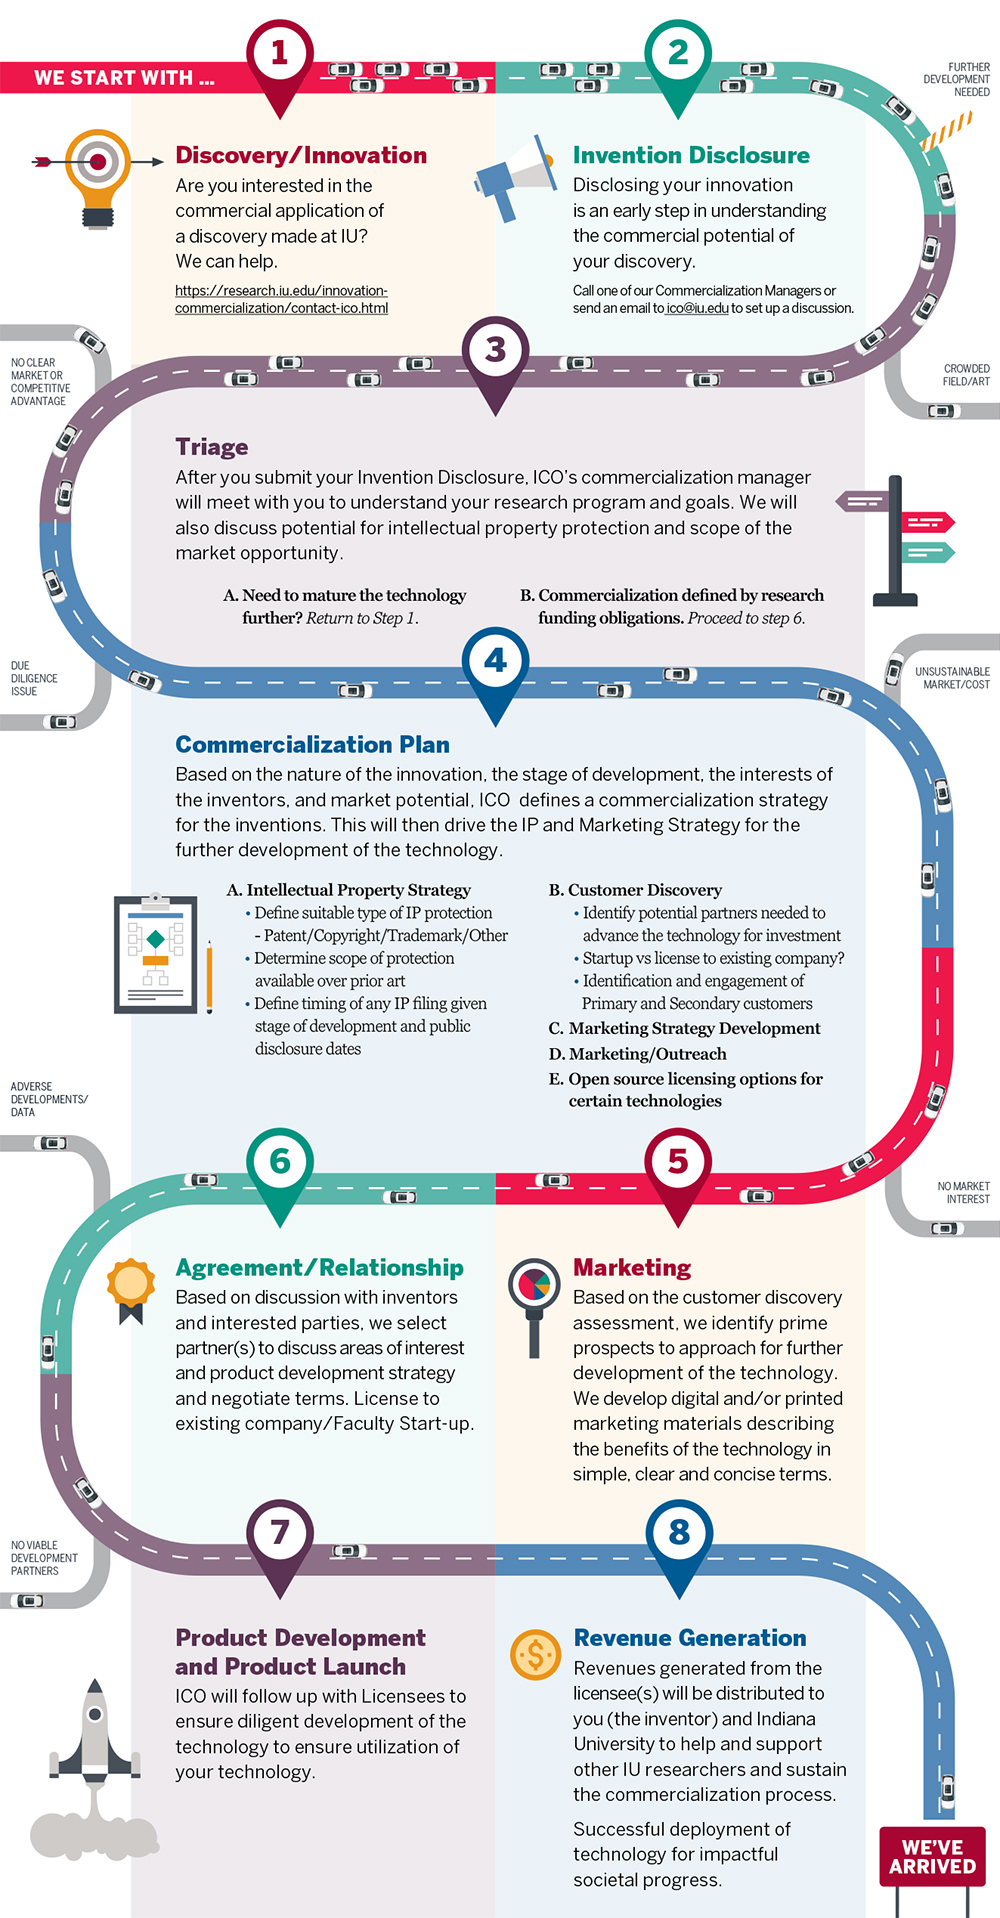 An infographic roadmap about navigating the various steps related to the commercialization process at IU